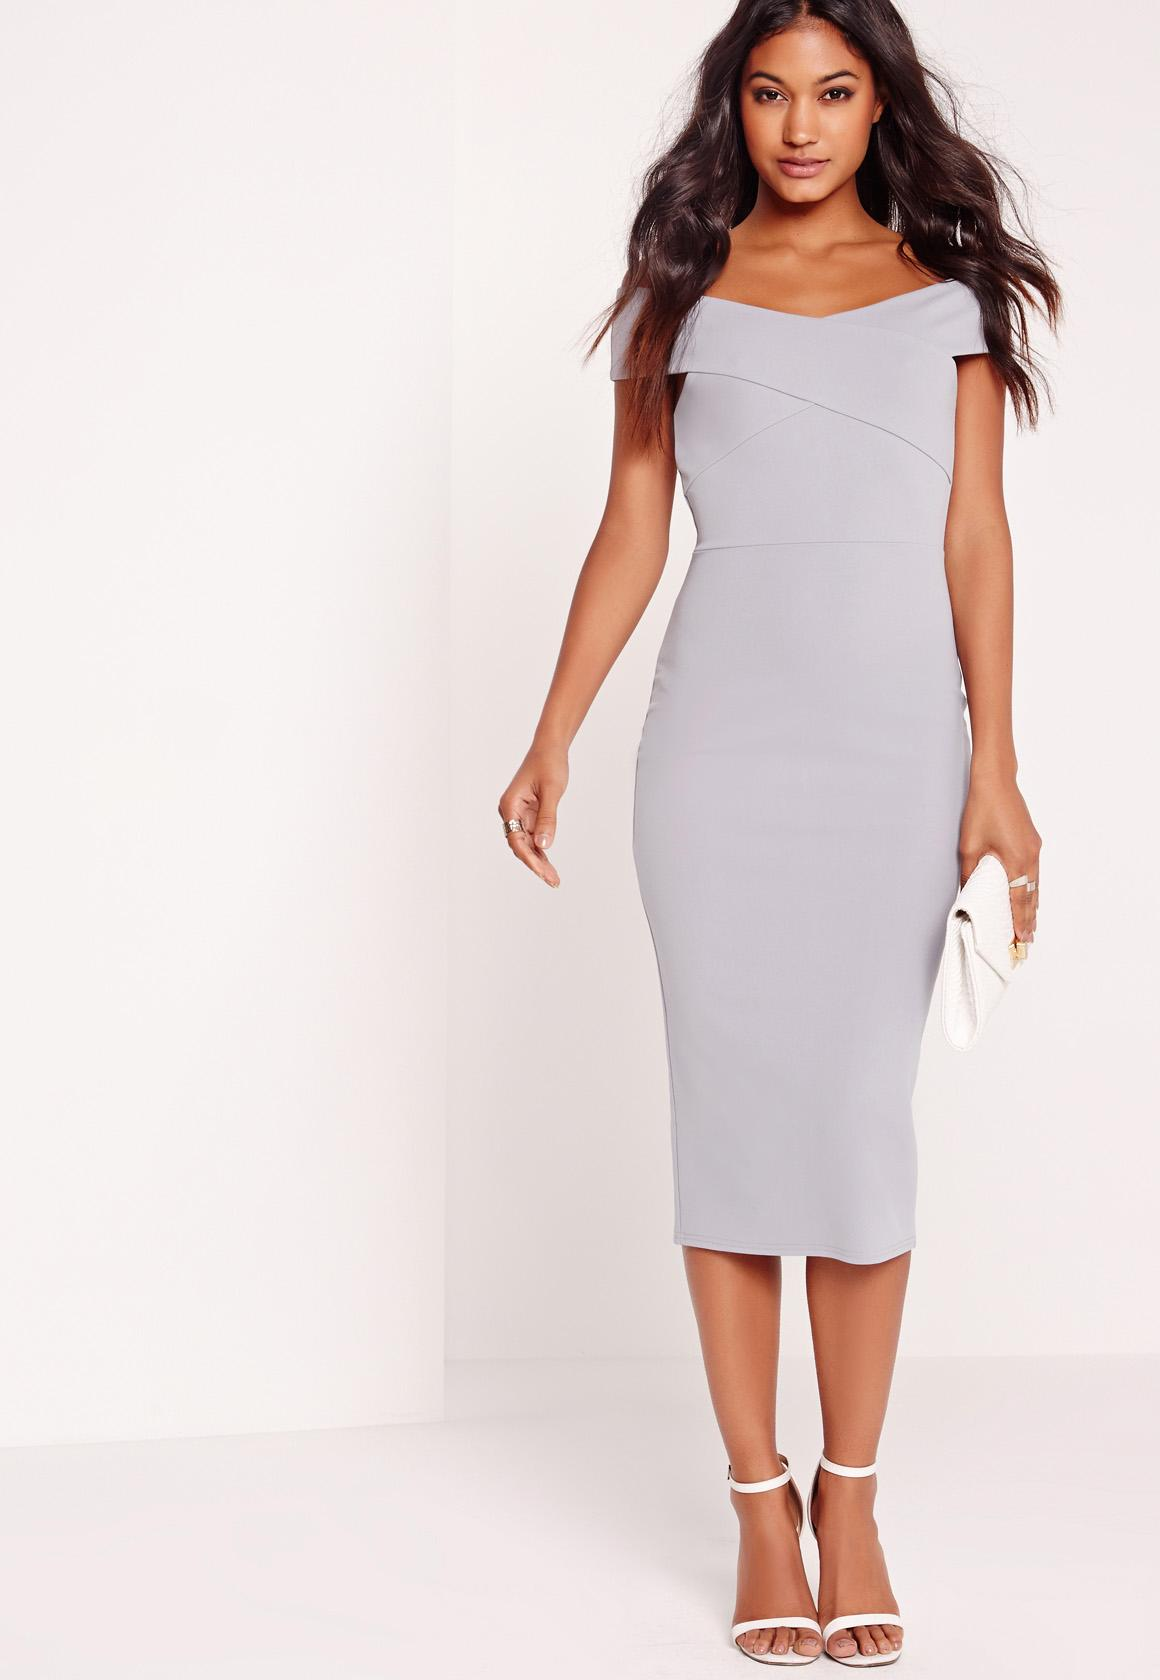 Graduation Dresses and Ball Gowns | Missguided